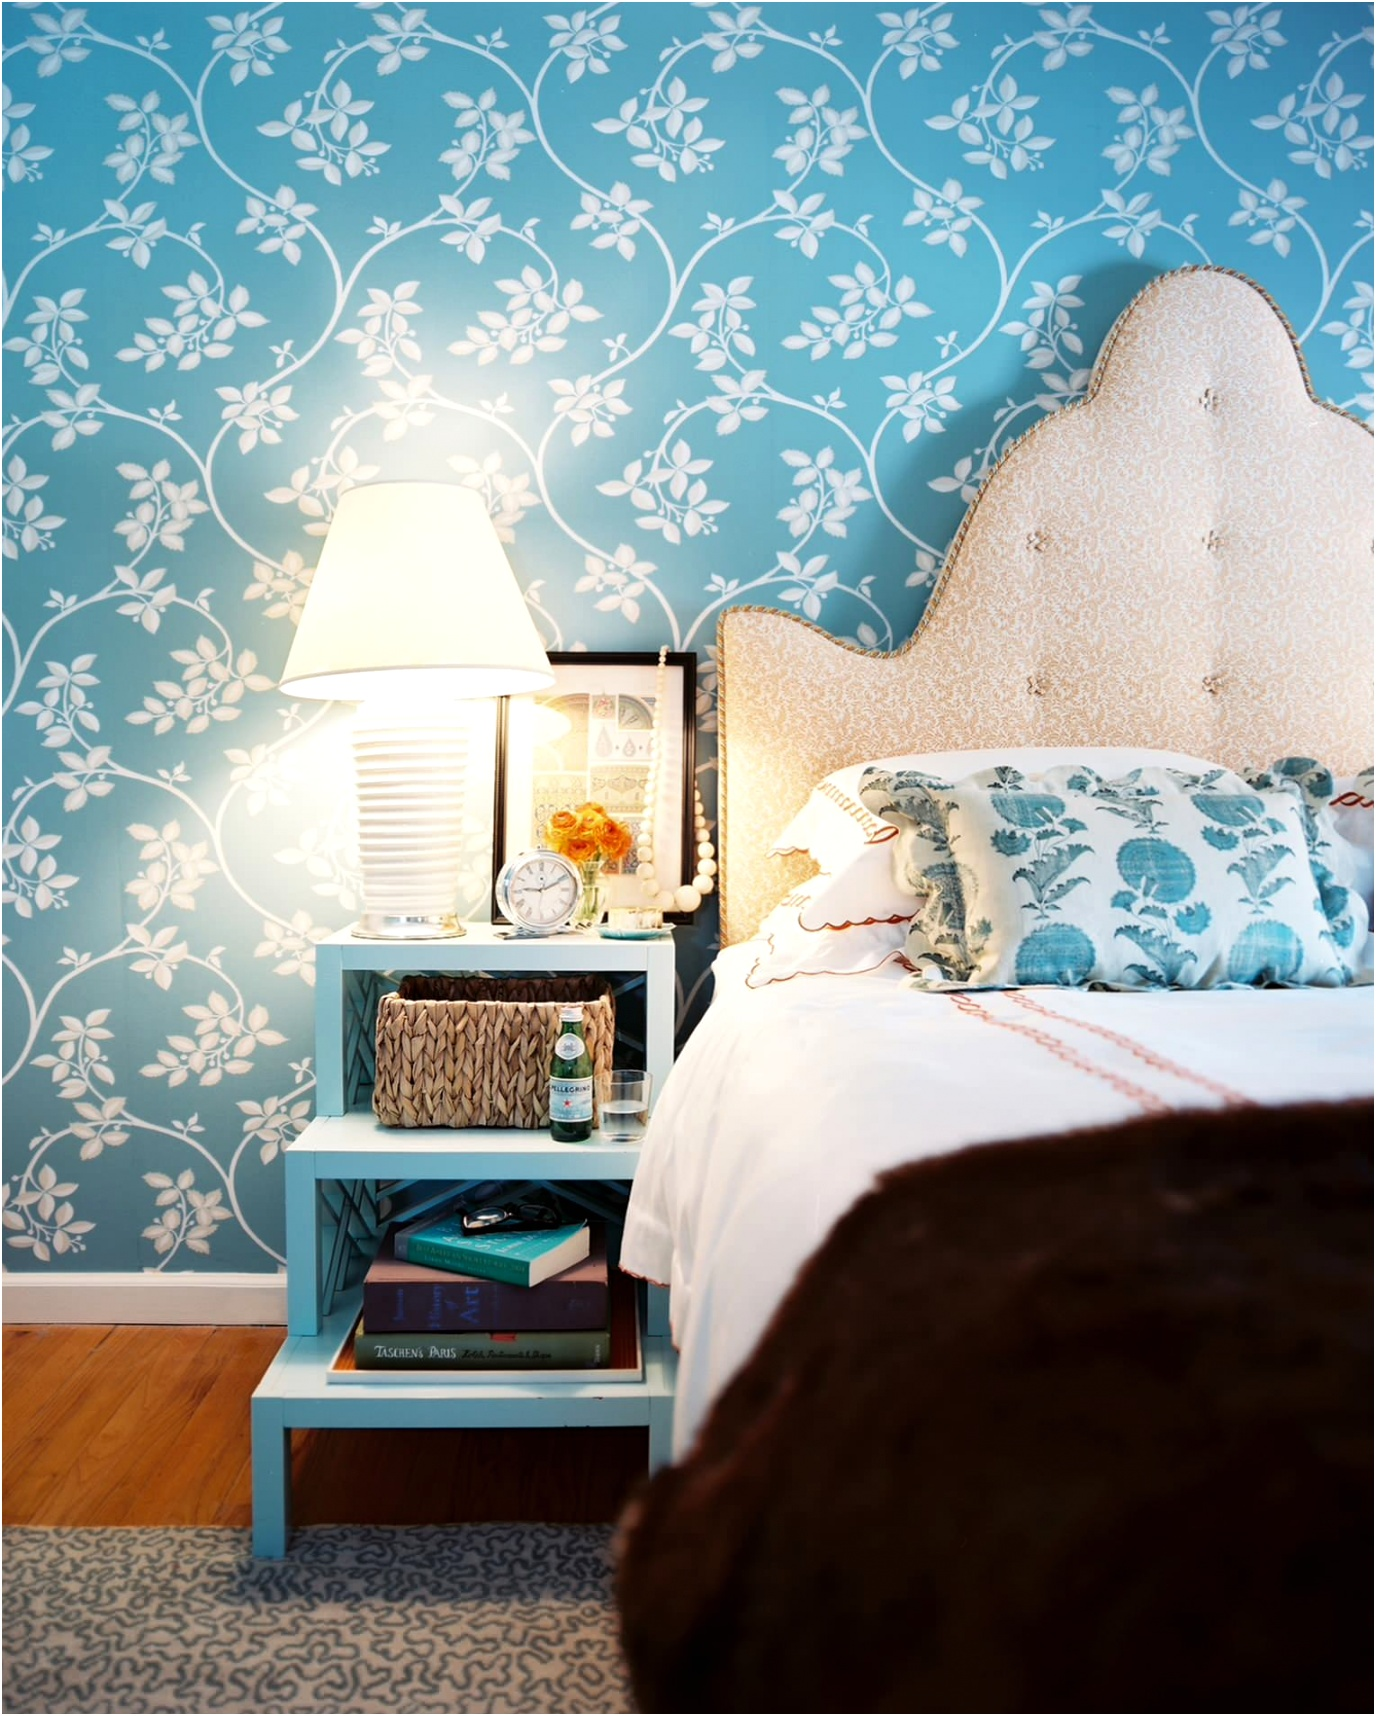 turquoise bedroom ideas phbr1 bp t 715 a 88 14